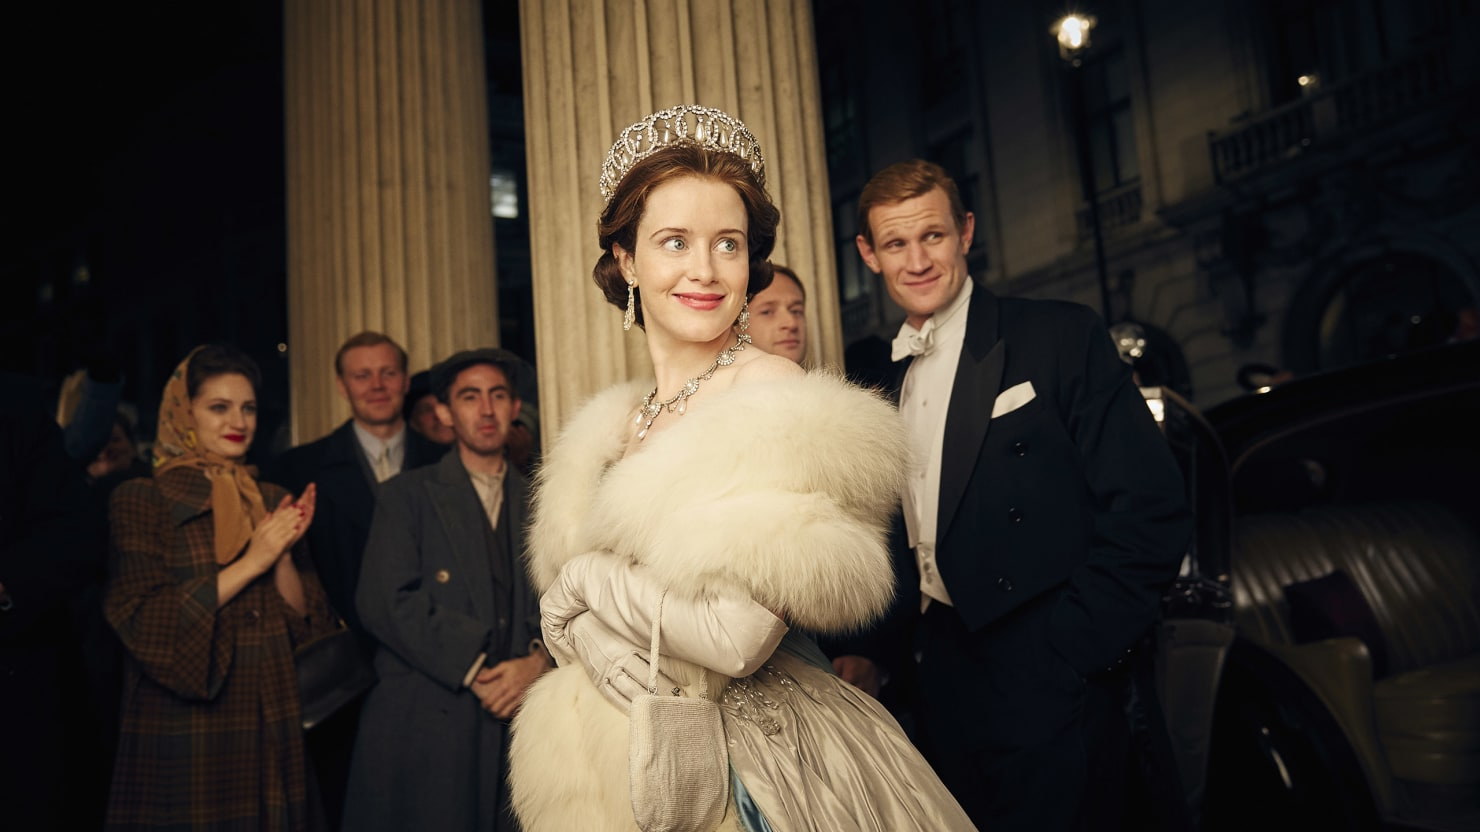 Inside Netflix's $130 Million 'The Crown,' the Most Expensive TV Series Ever